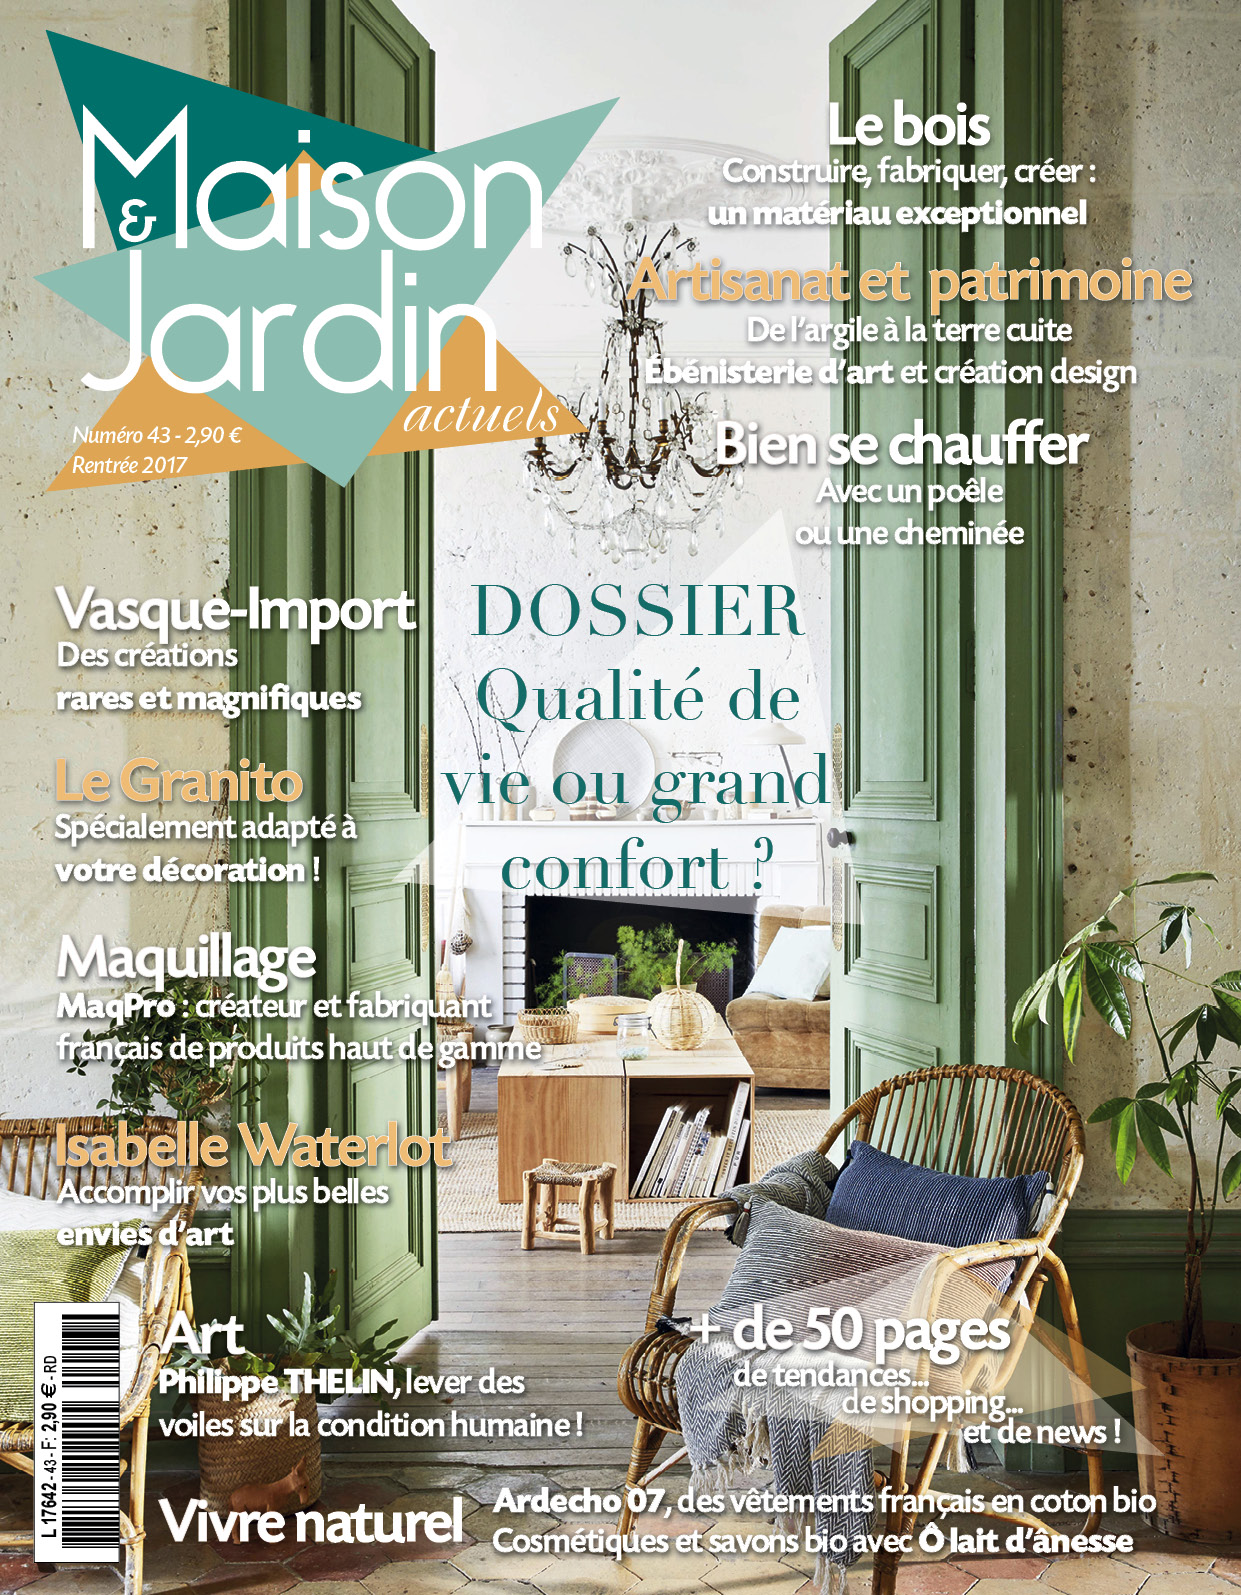 maison jardin actuels pour une maison colo ecolobizz le magazine du green business et de. Black Bedroom Furniture Sets. Home Design Ideas